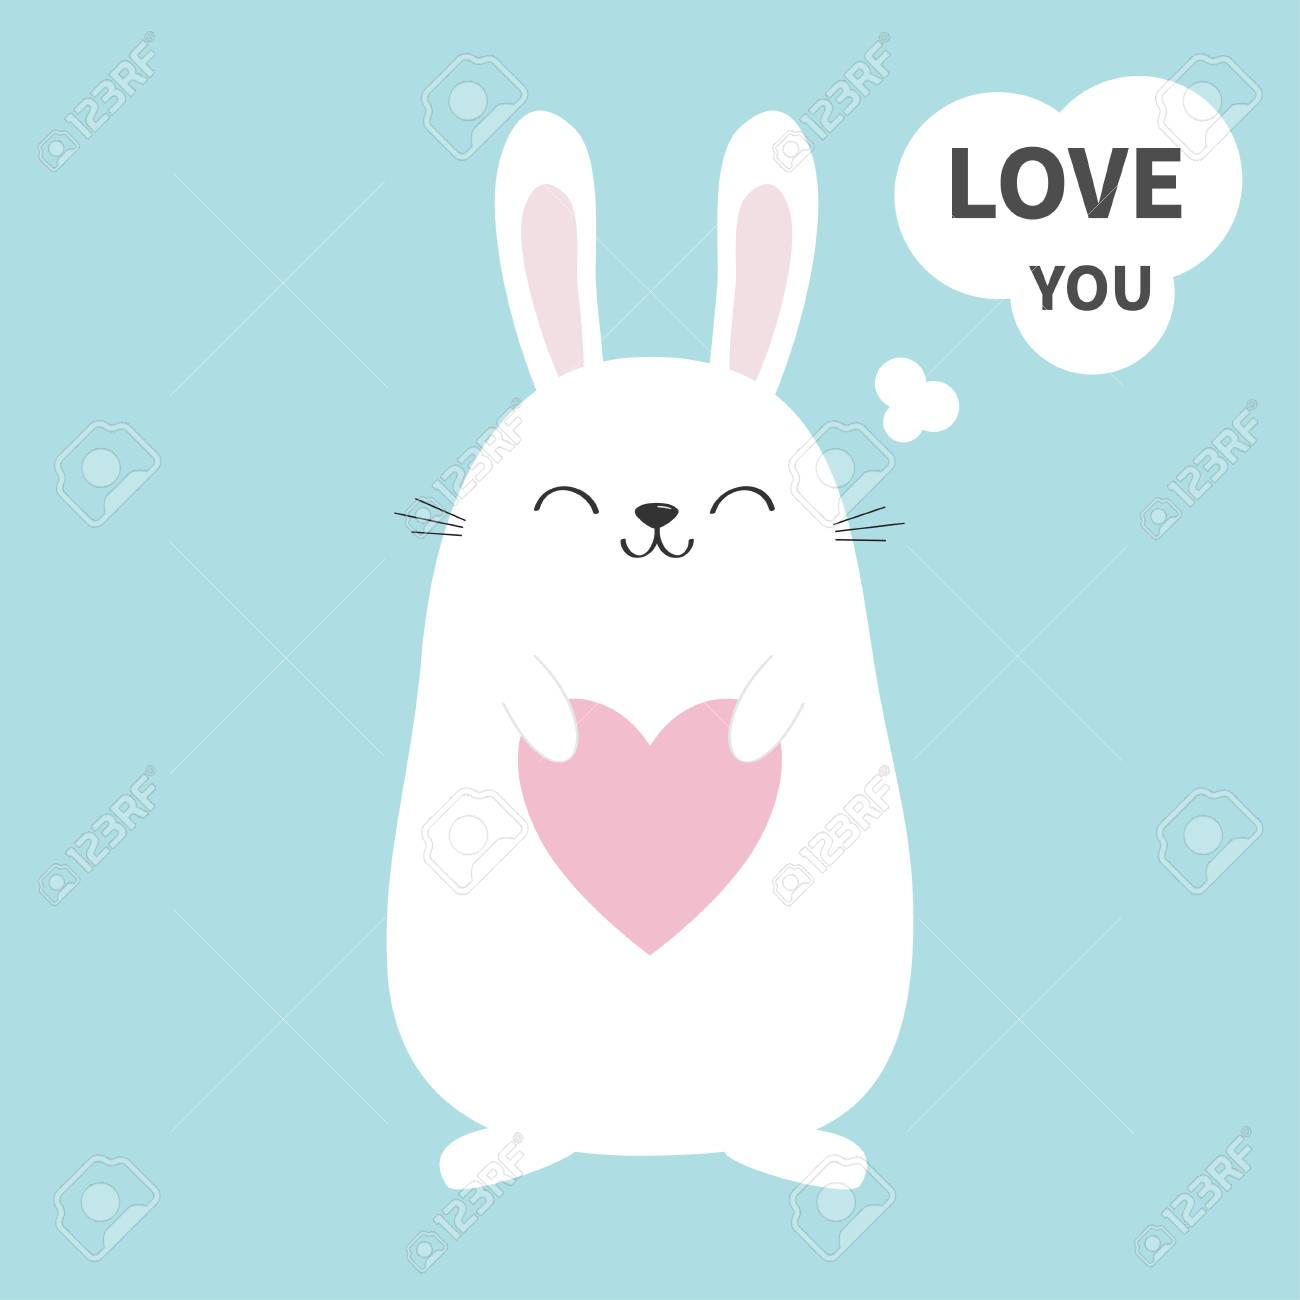 White Bunny Rabbit Holding Heart Talking Thinking Bubble Love